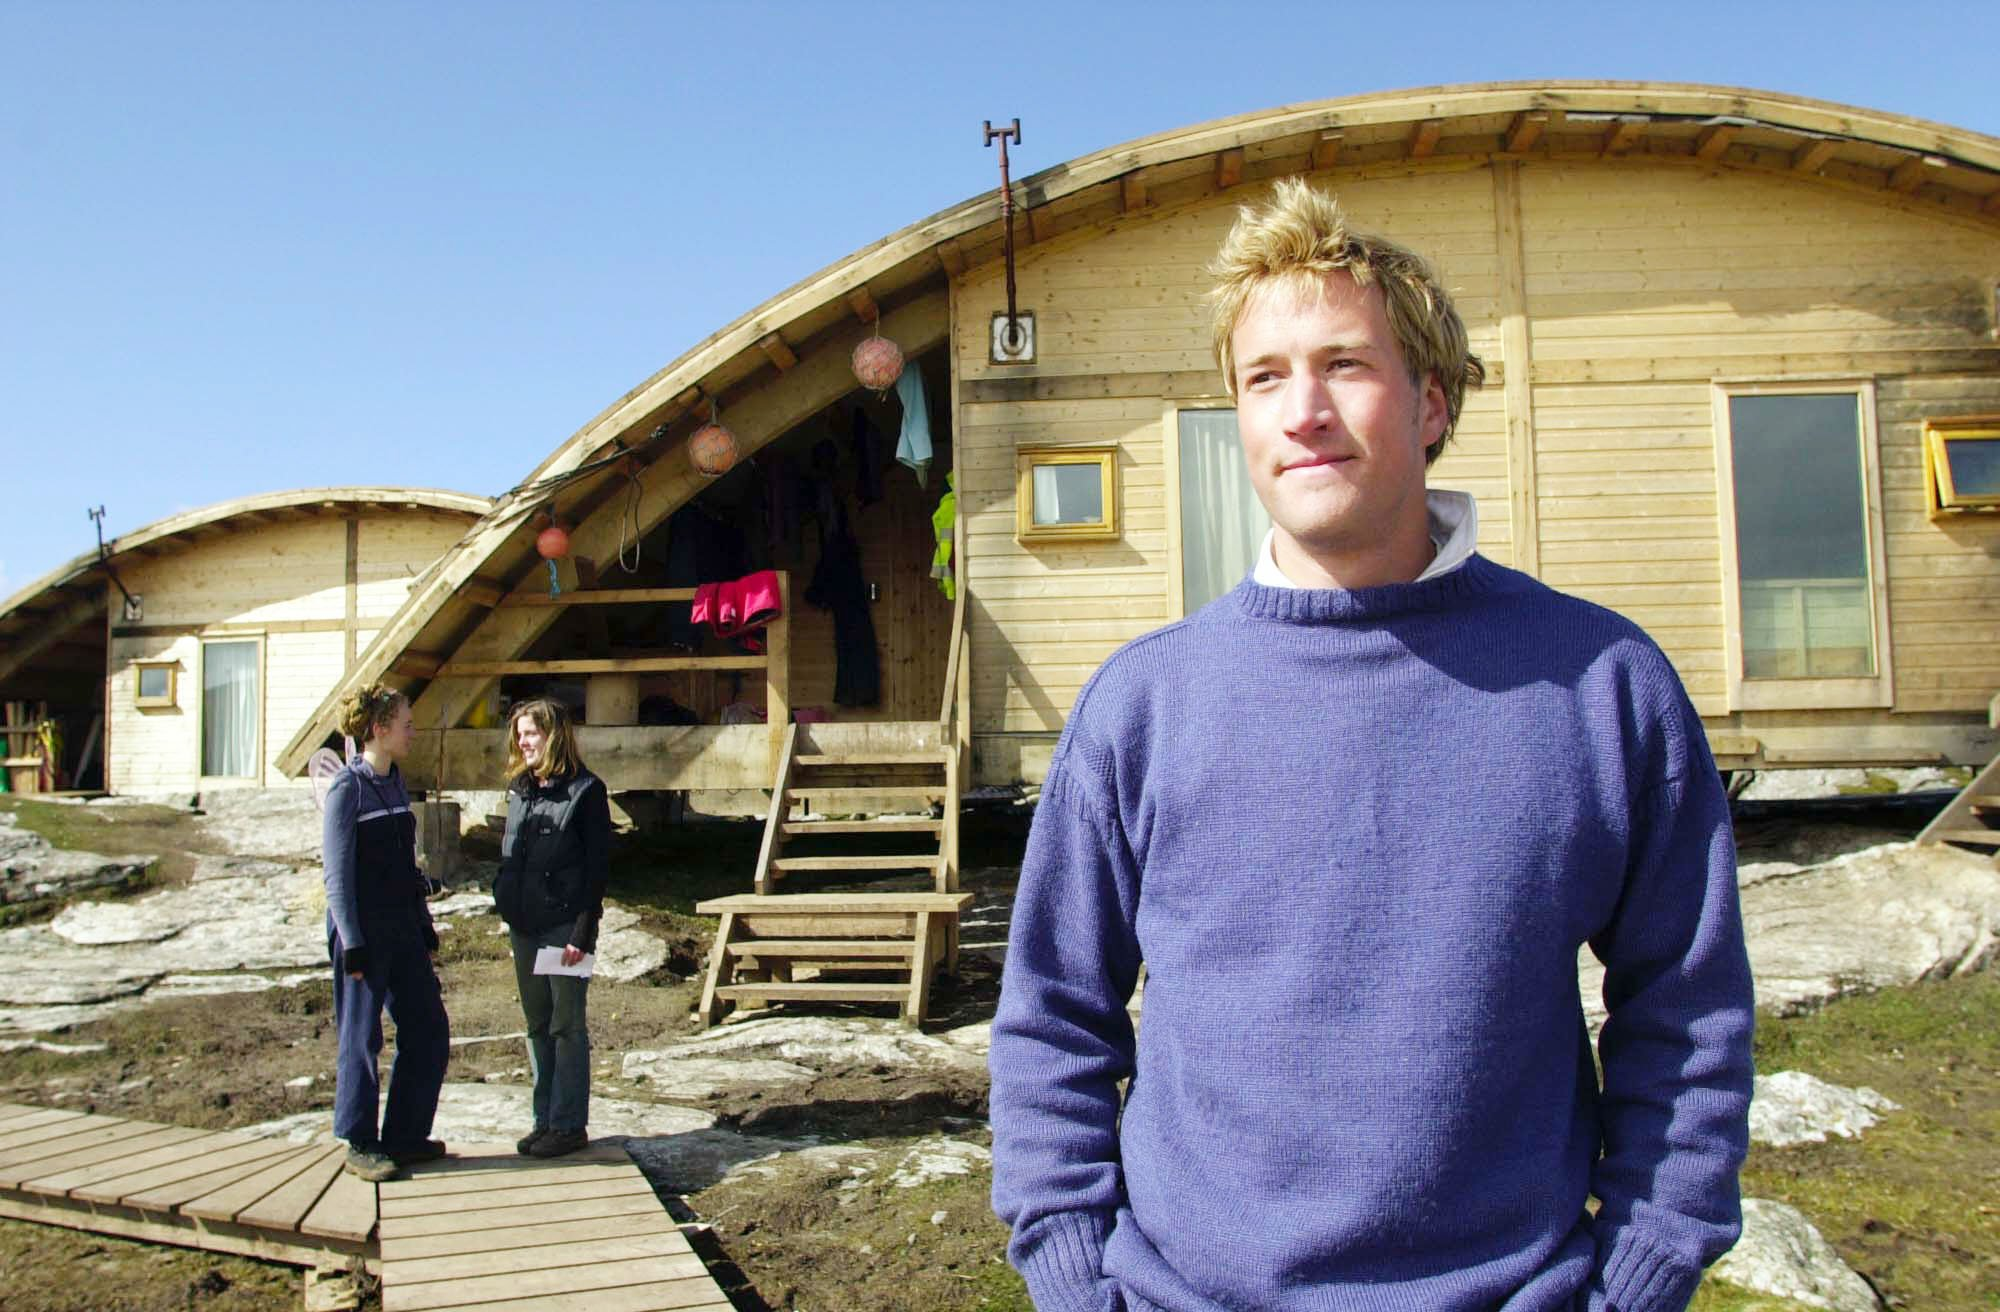 Castaway Benjamin Fogle (Ben Fogle), one of the 35 adventurers, who are being filmed for the BBC fly on the wall show, Castaway 2000, looks out from the 'pod' living accommodation as Philly Page (left) chats to Tanya Cheadle on the island of Taransay in the Western Isles of Scotland Friday 14th April 2000, where the group have been living since New Year's Eve as part of the BBC's television programme. See PA Story MEDIA Castaway. **EDI** PA Photo: Ben Curtis....A